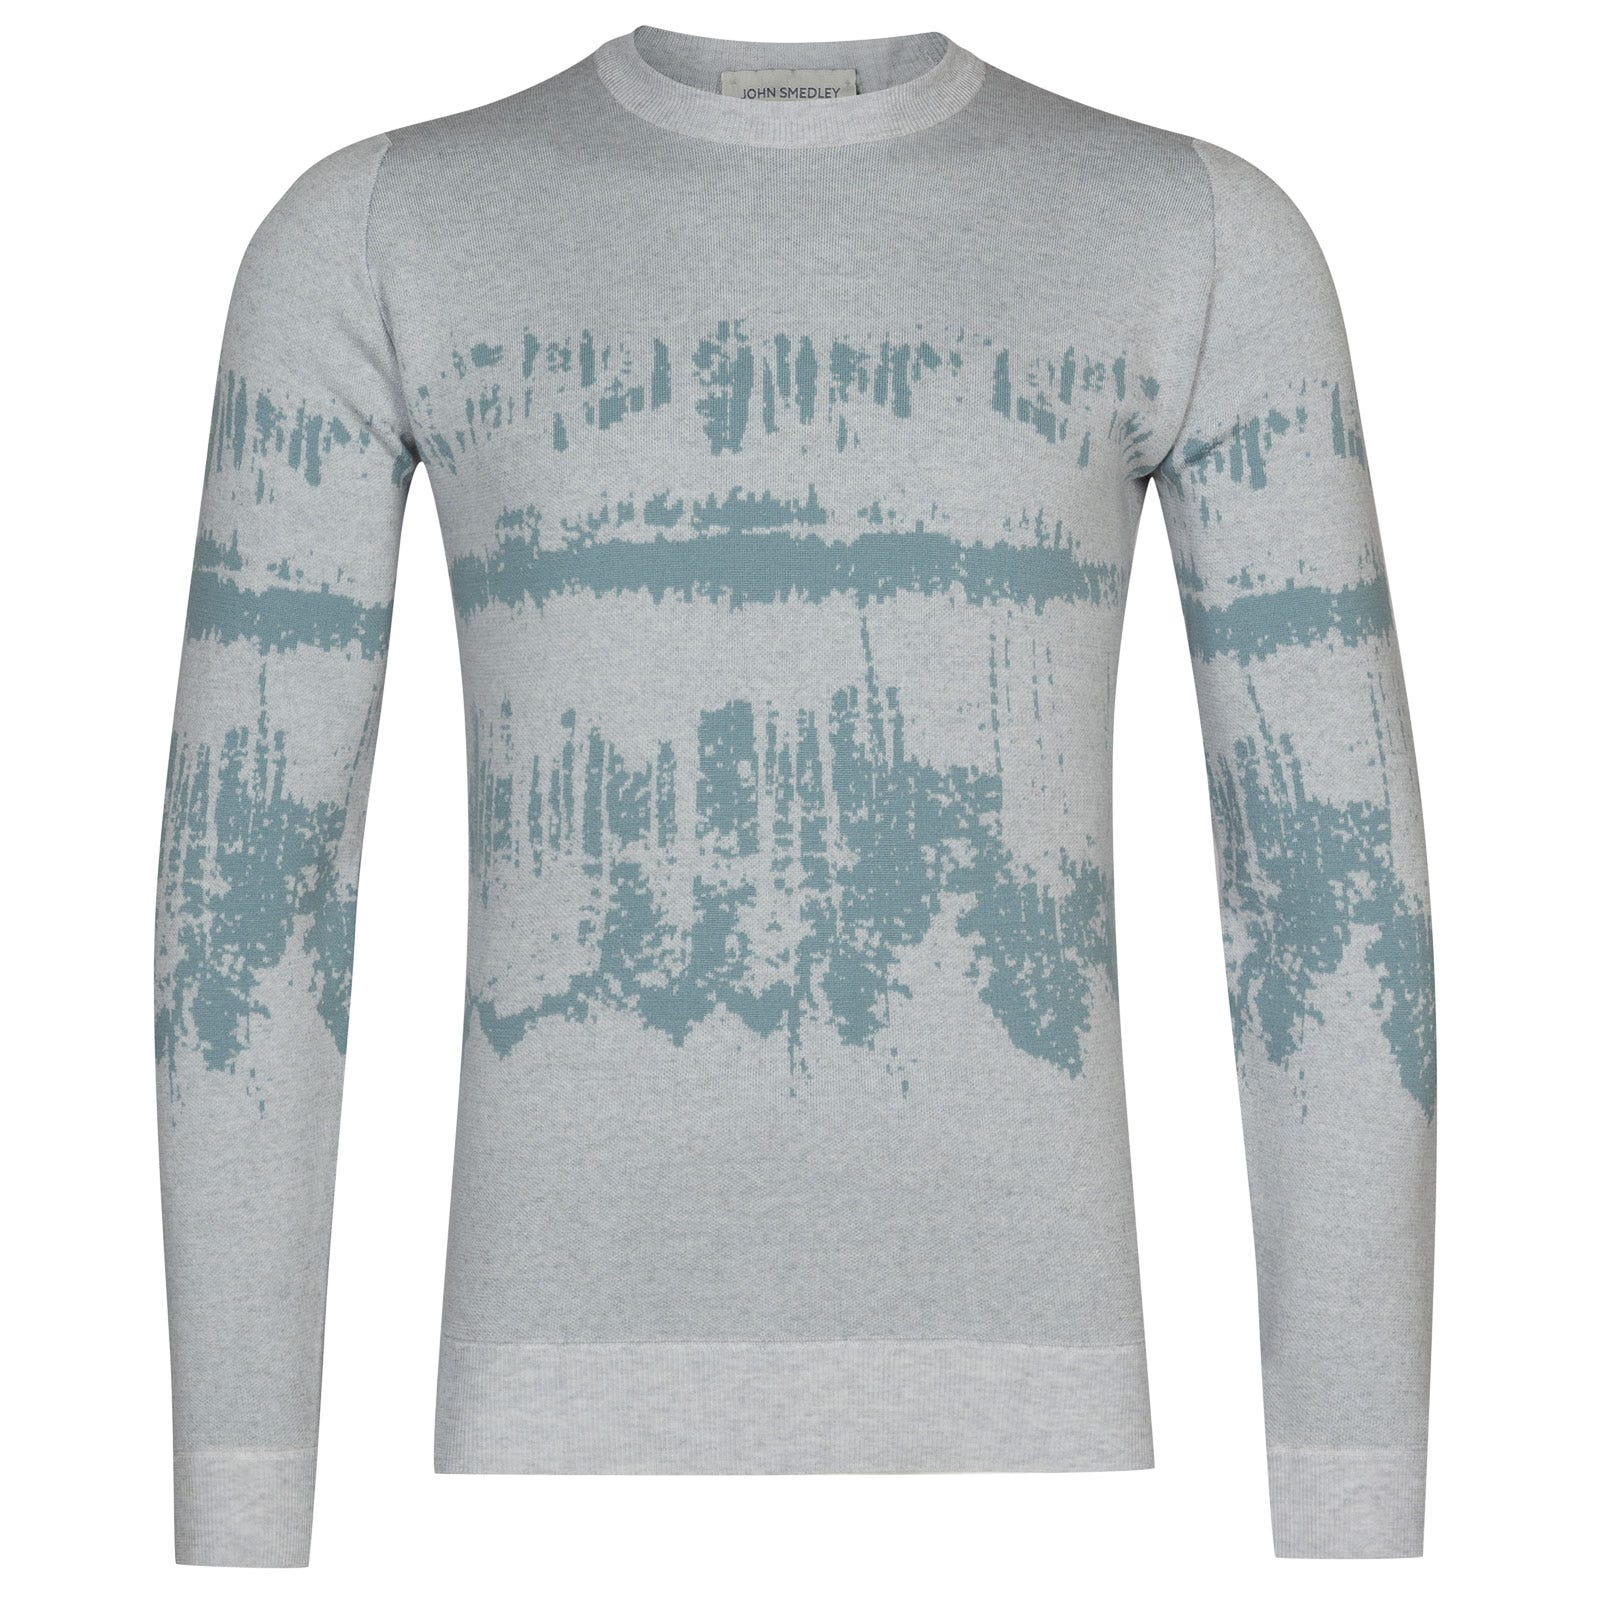 John Smedley girling Merino Wool Pullover in Bardot Grey/Summit Blue-L